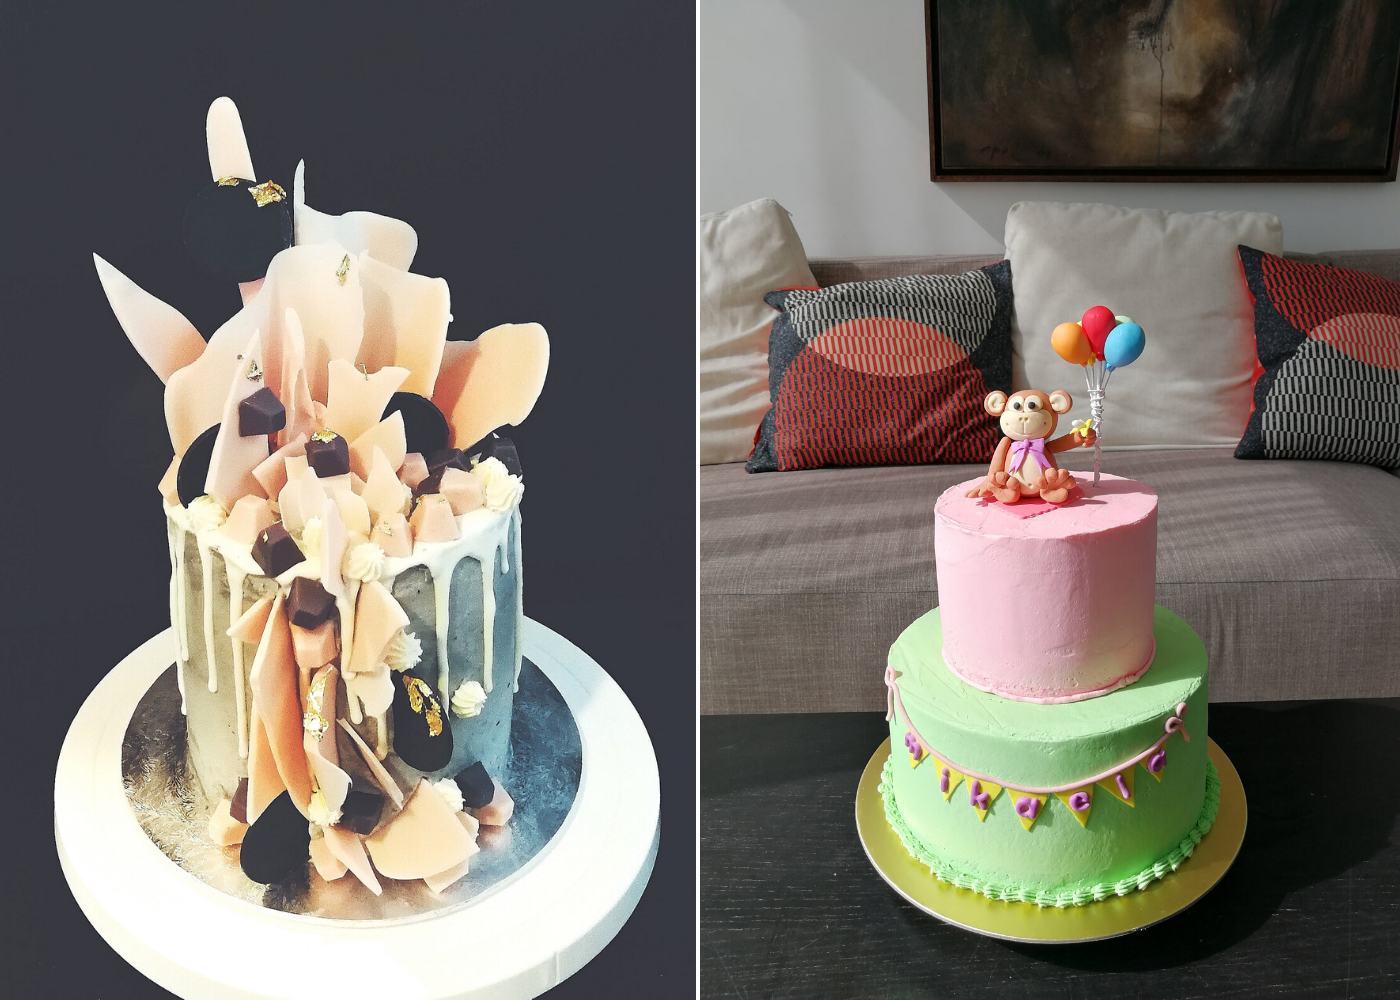 C. Pattiserie | cakes home bakers singapore